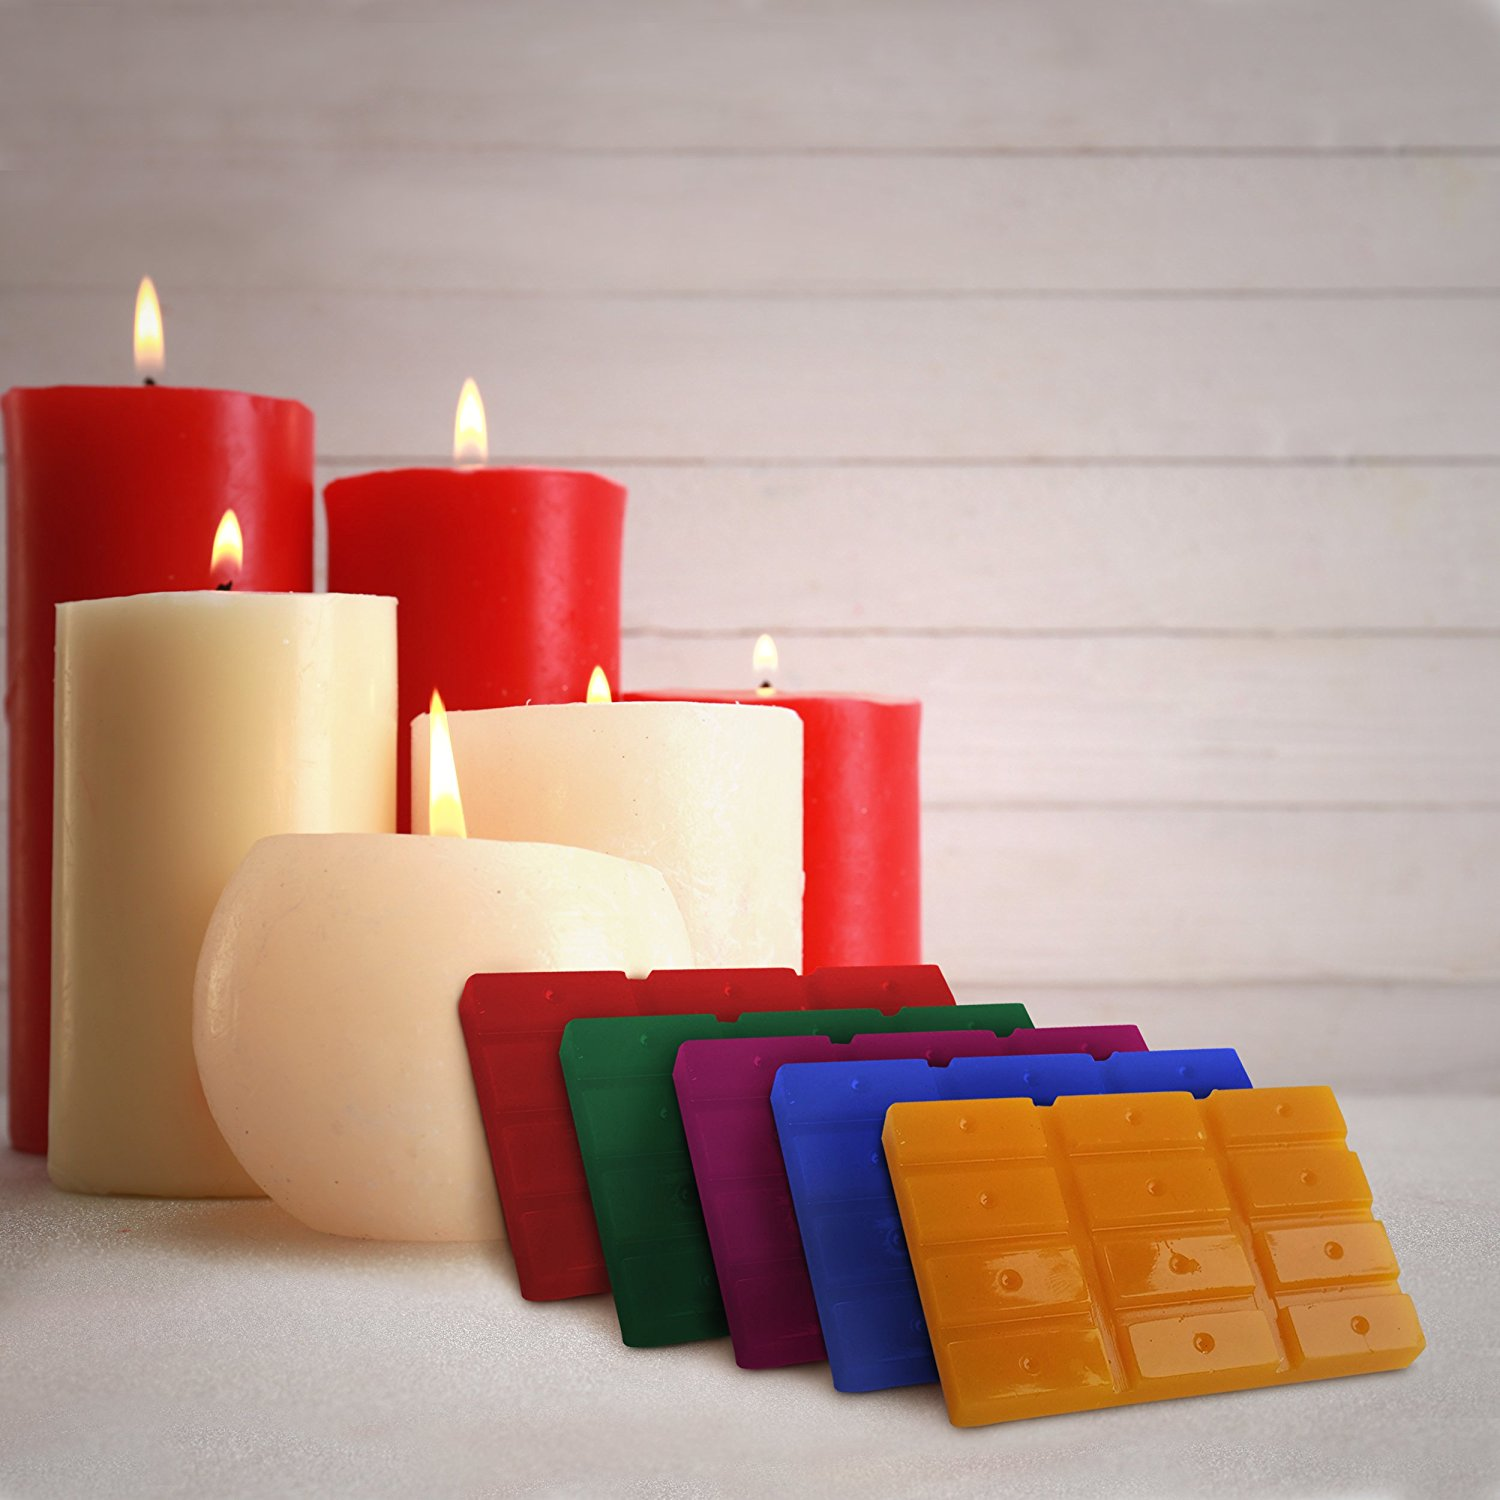 Candle Dye for DIY Soy Candle Making – 5 Color Wax Dye Blocks ...